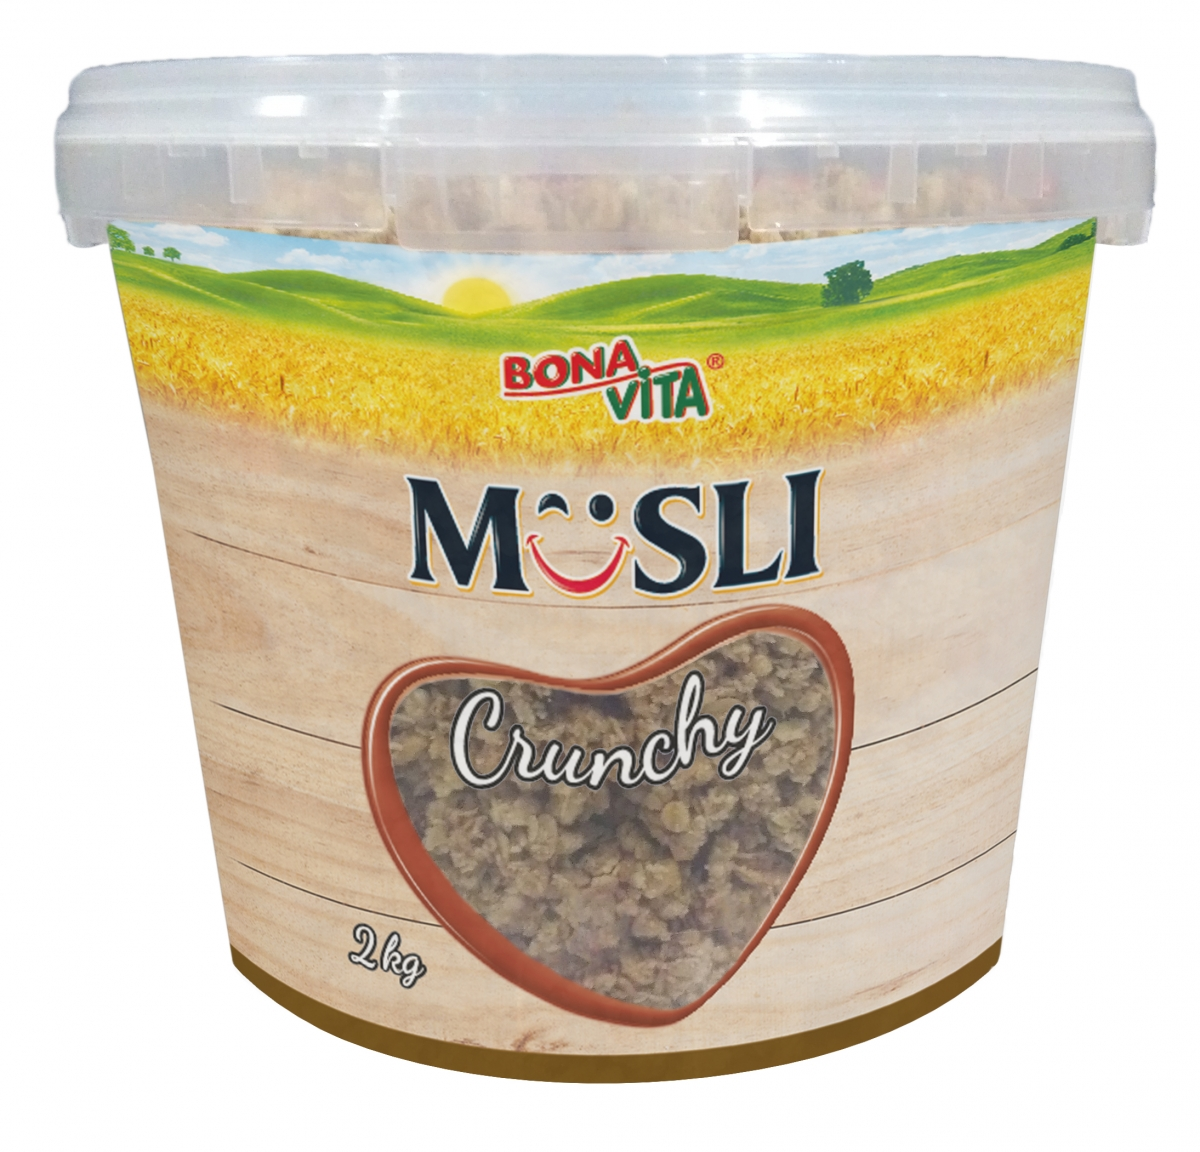 Müsli with Chocolate (2kg)